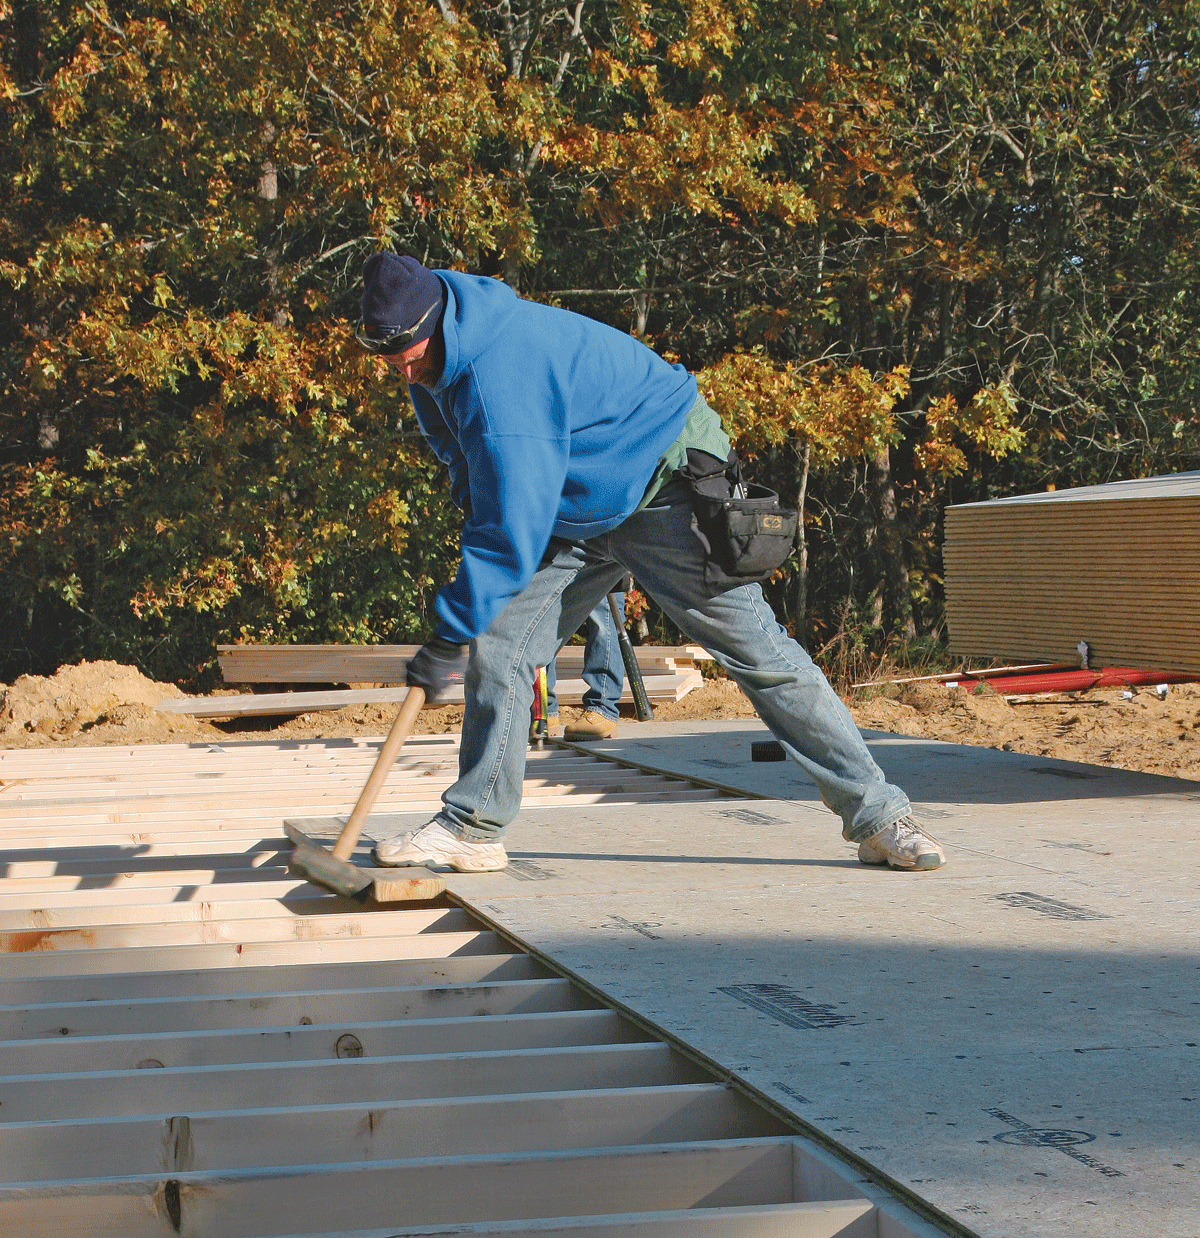 To mate the tongue and groove edges, have a helper stand on the edges as you drive the sheet into place. When working solo, hold the edges in line with one foot as you tap with the sledge hammer.